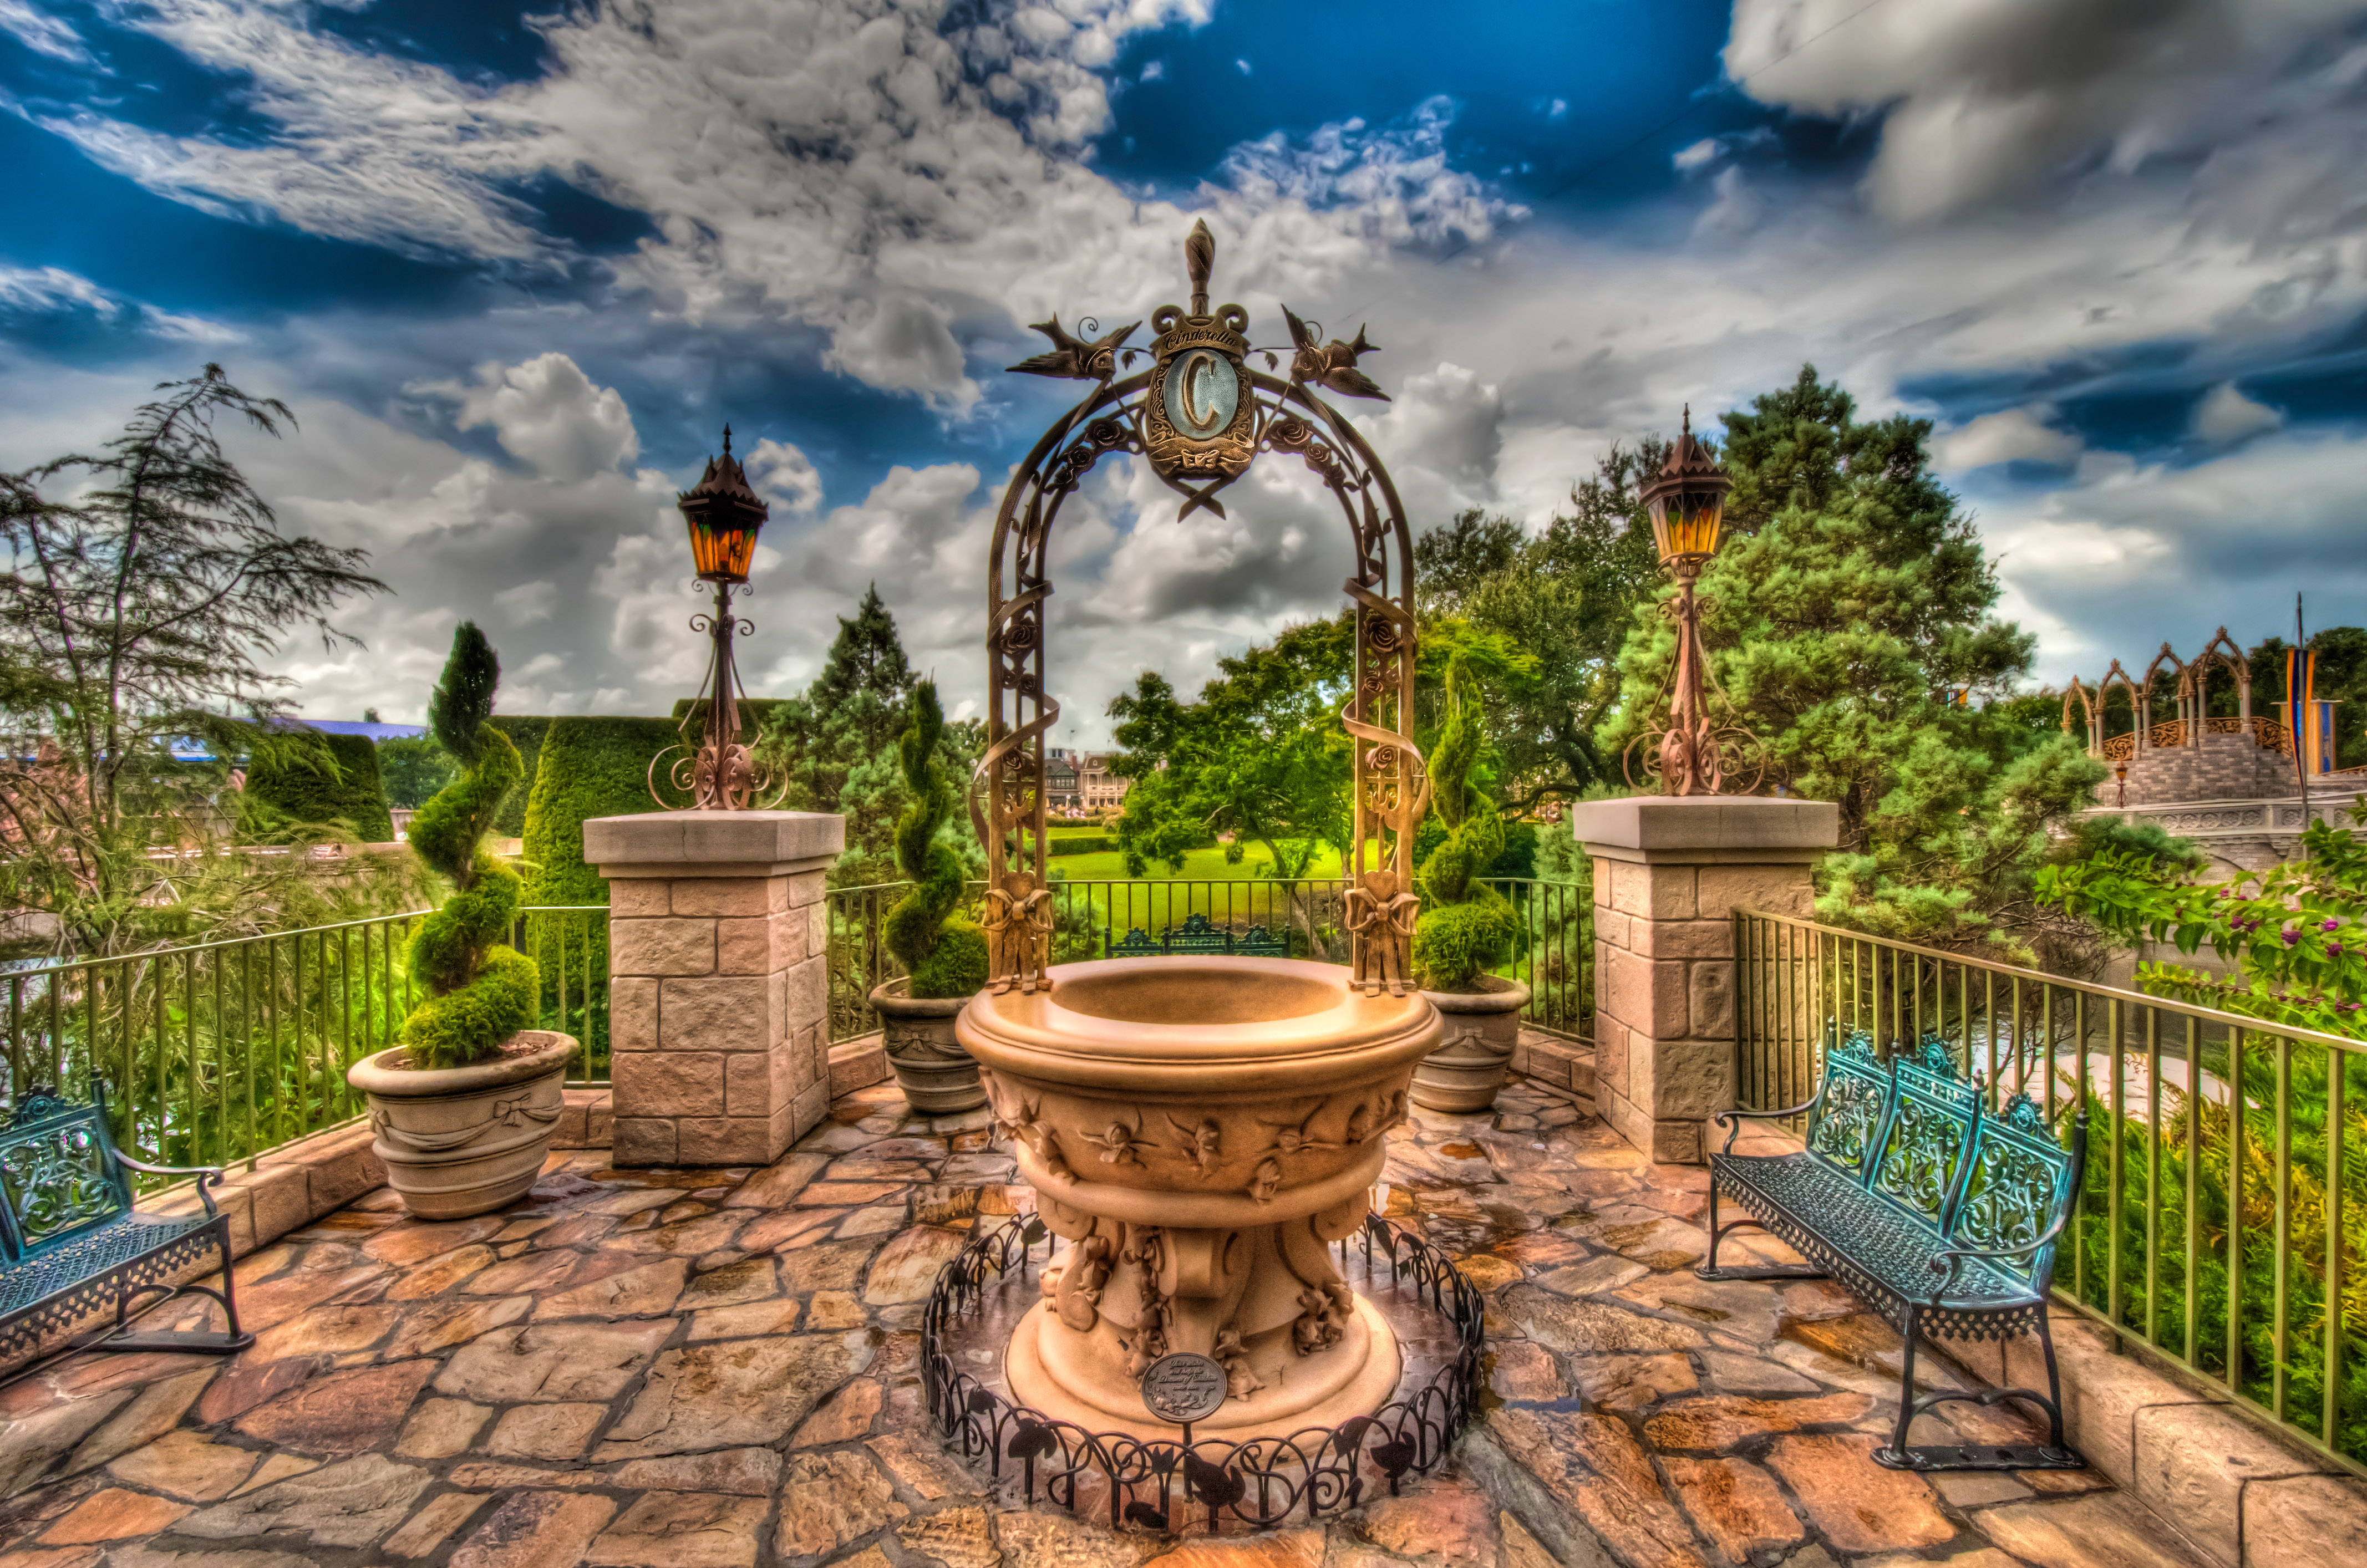 HDR Photography (an introduction) | Wdwphotoclub's Blog